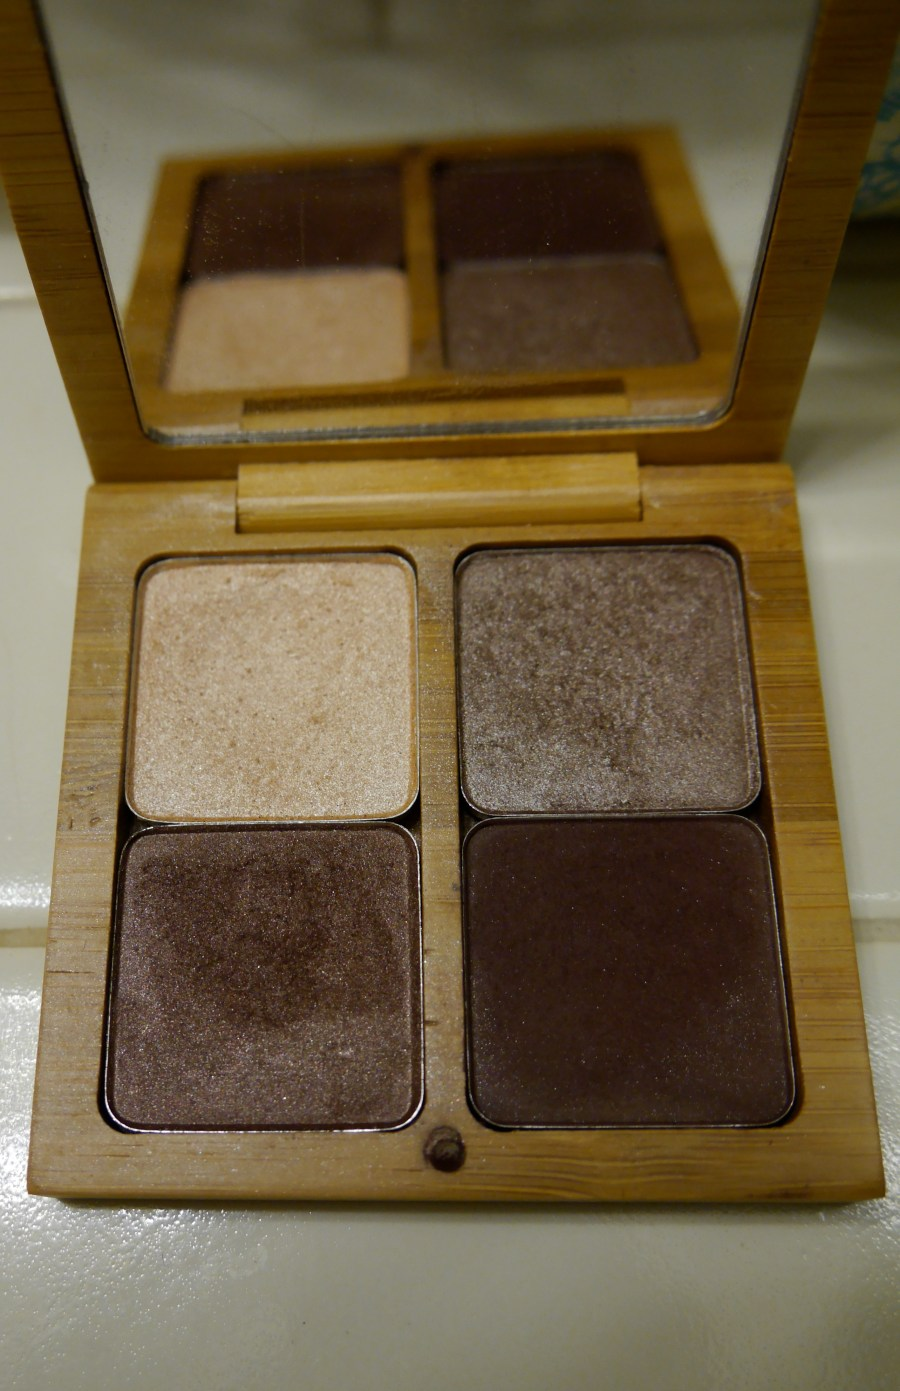 tarte-amazonian-clay-eyeshadow-quad-palette-eyeshadow-swatches.jpeg